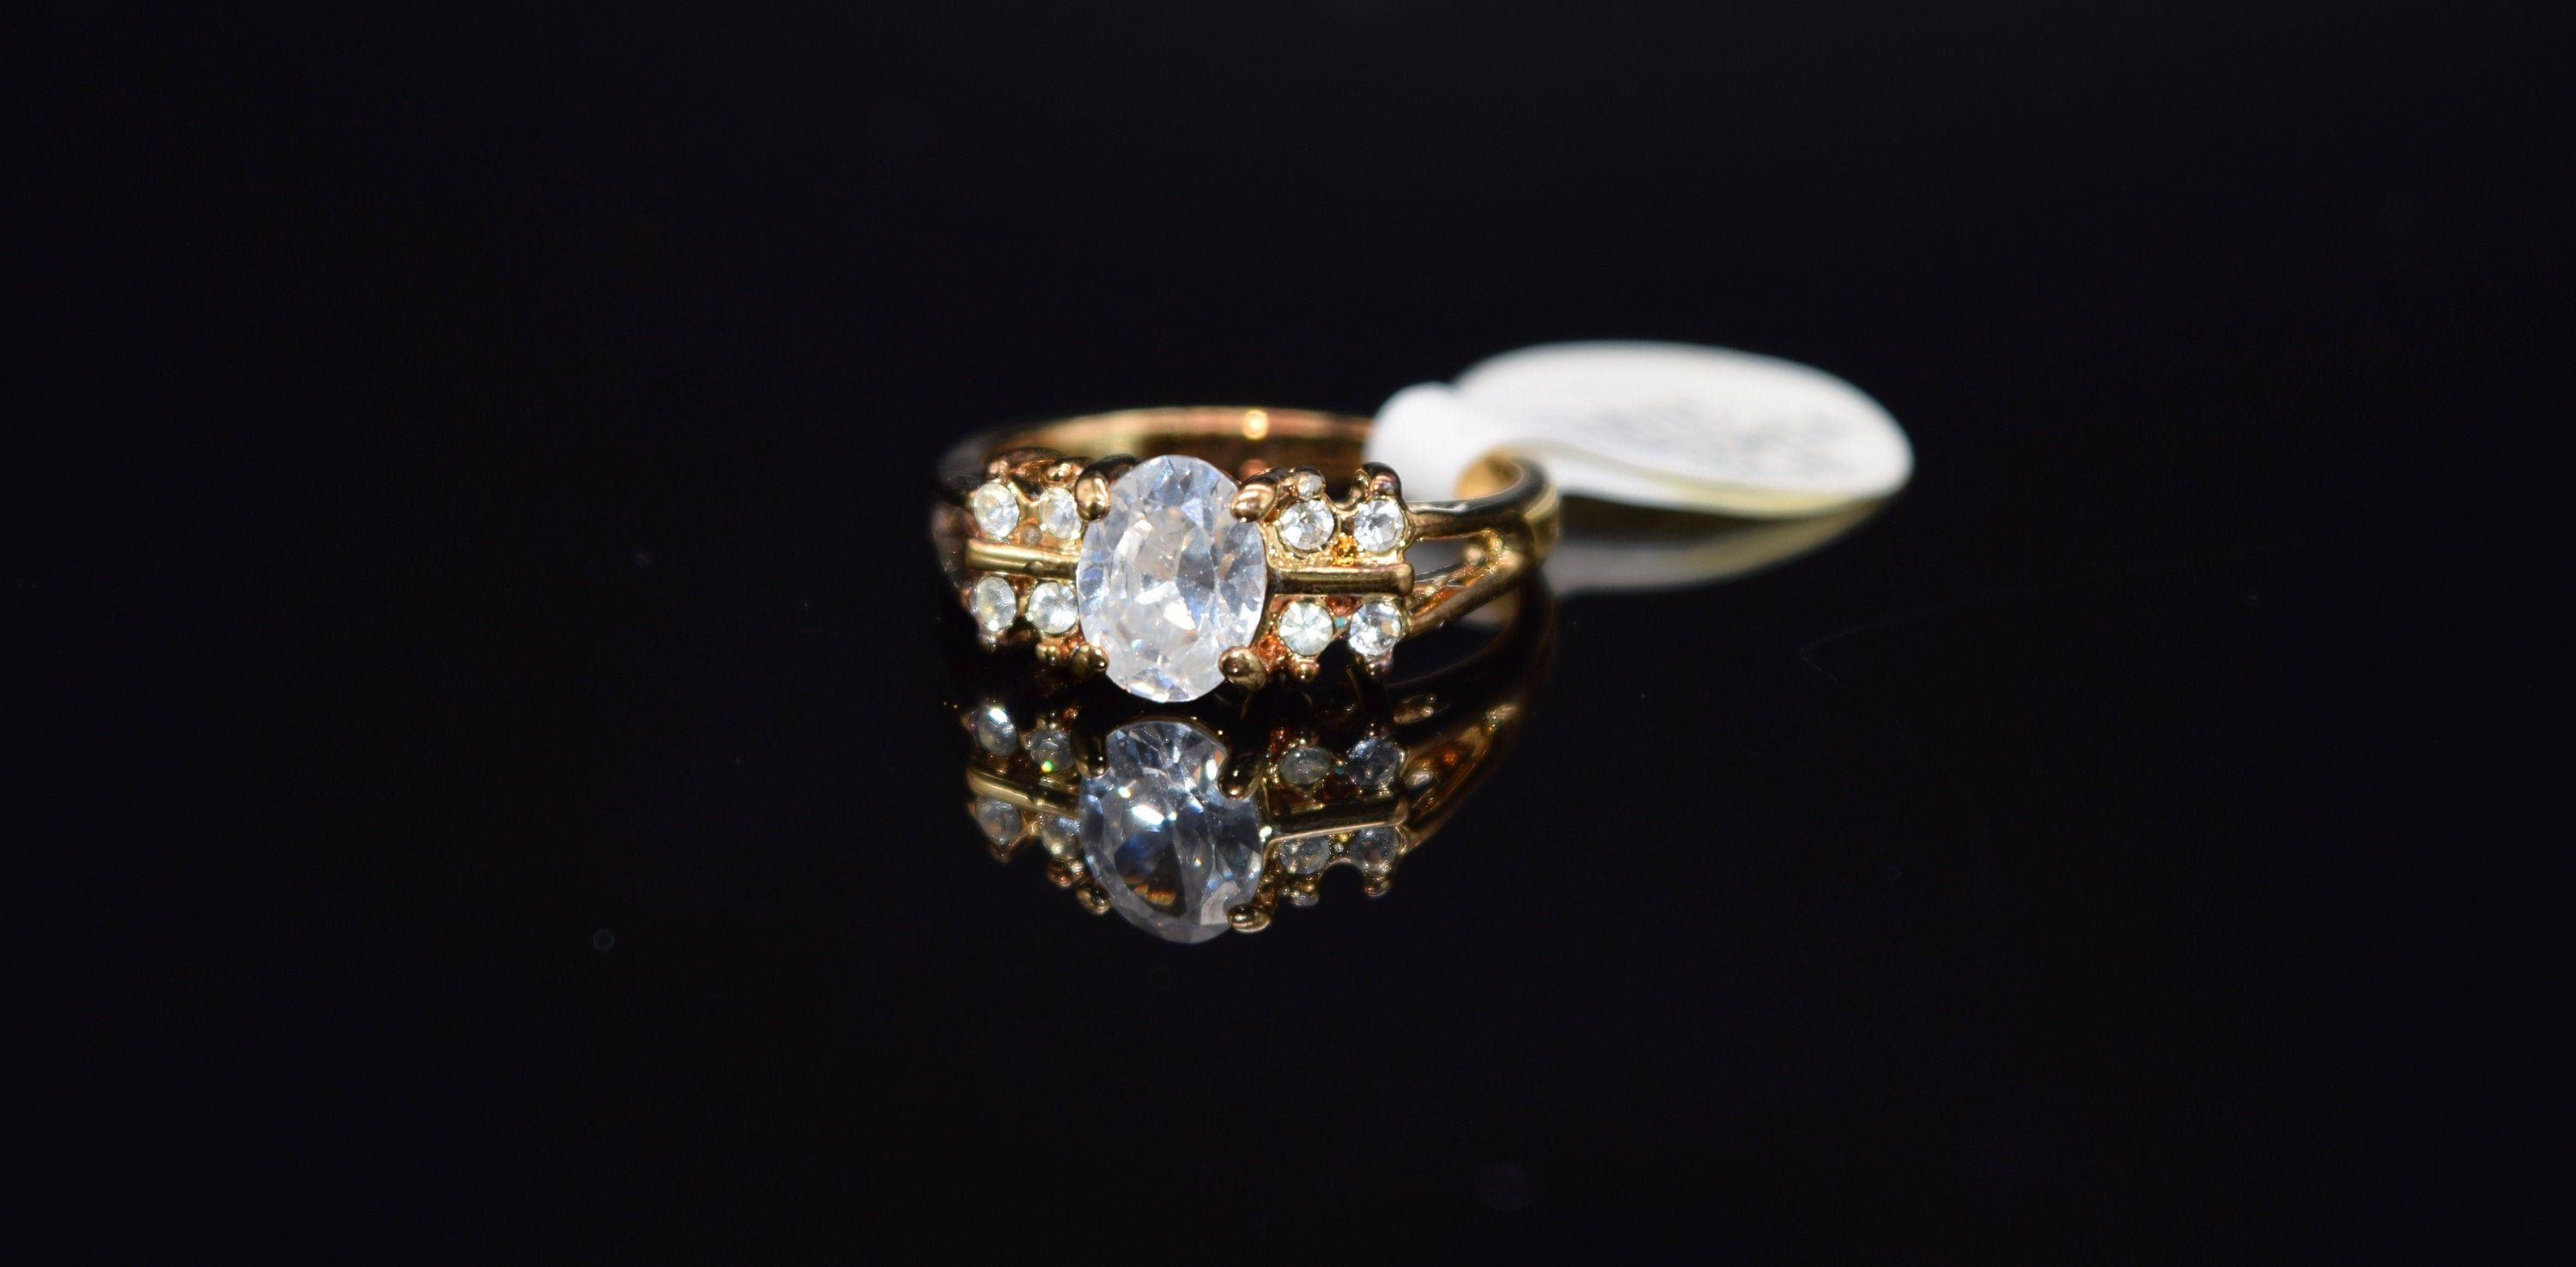 14k Gep Cubic Zirconia Engagement Ring Gold Cubic Zirconia Ring Size 8 Ring Cubic Zirconia Engagement Rings Engagement Rings Vintage Engagement Rings